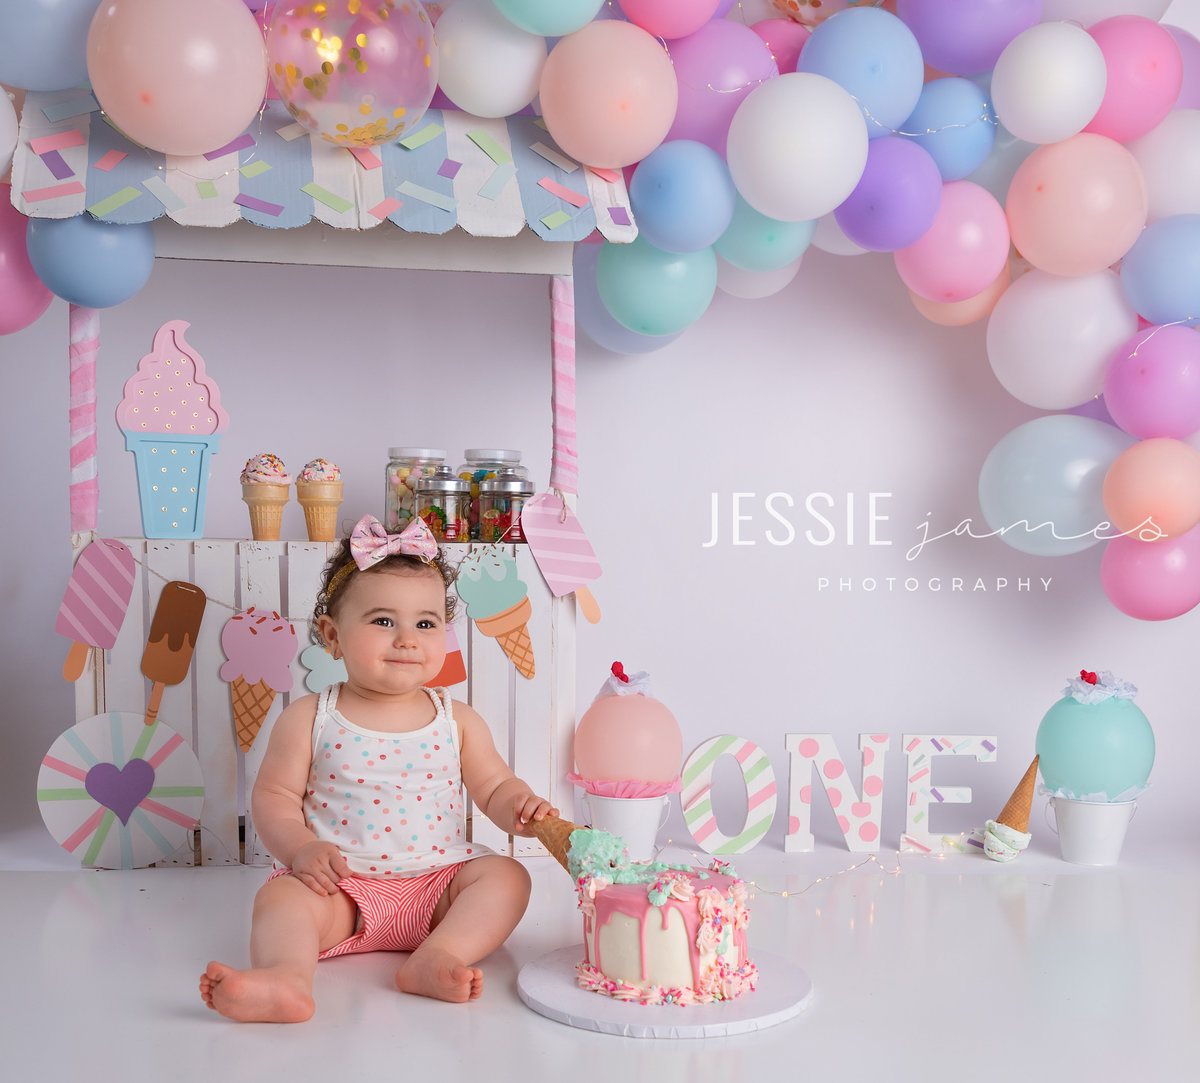 ice cream themed cake smash photography session